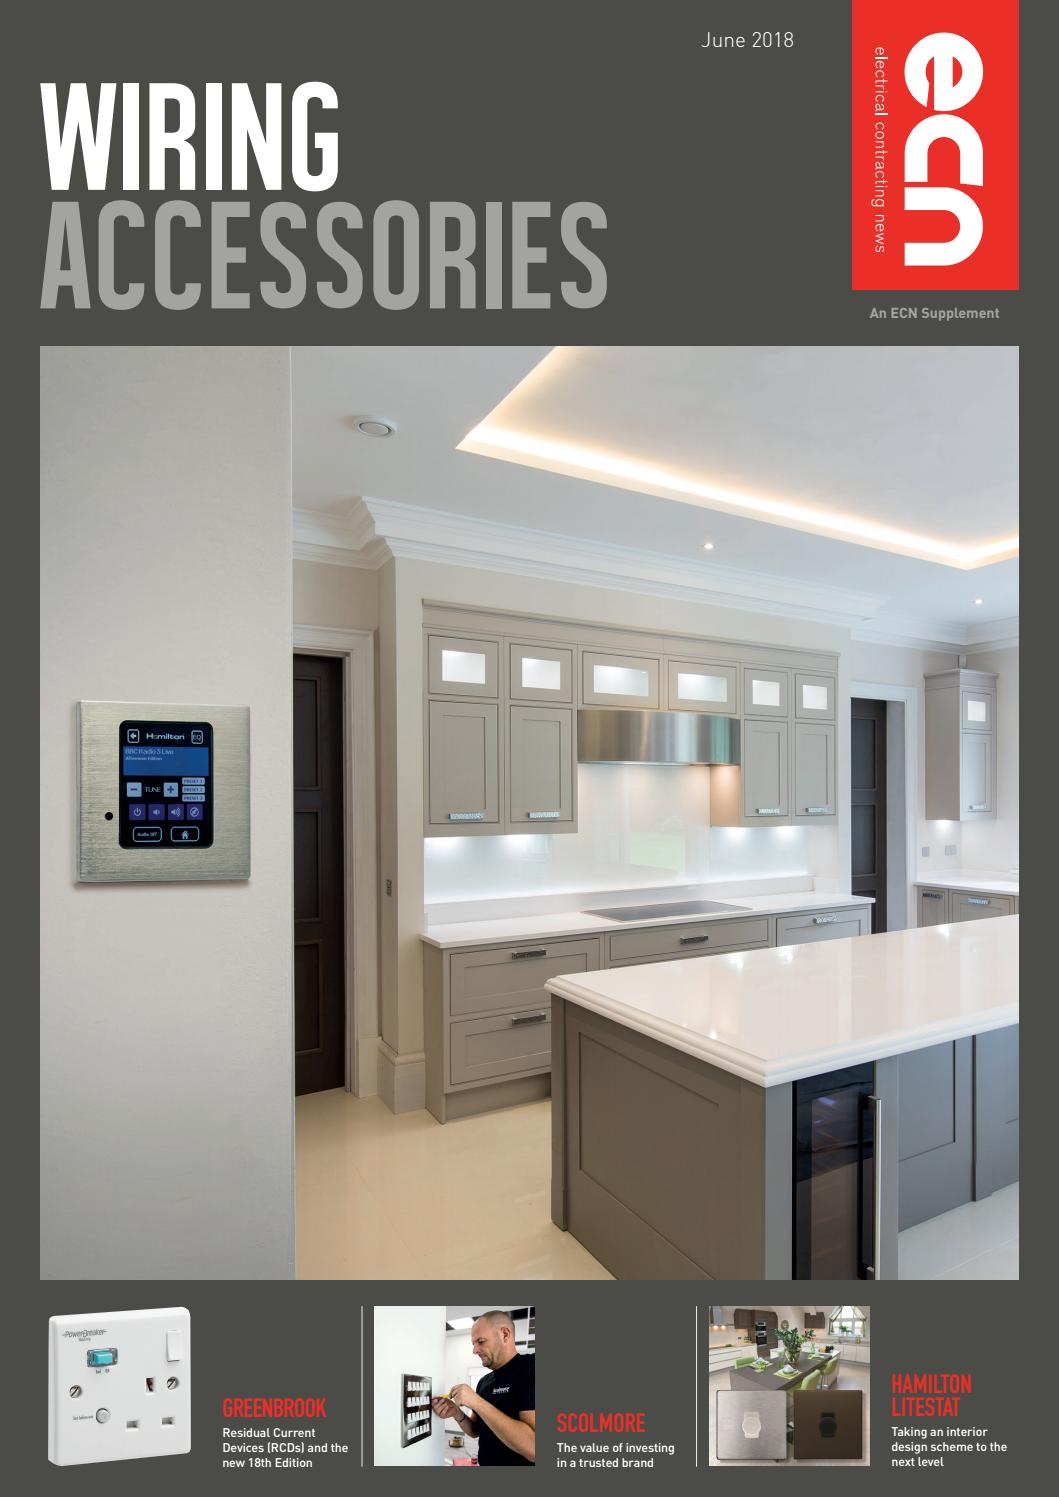 Ecn Wiring Accessories Supplement 2018 By All Things Media Issuu